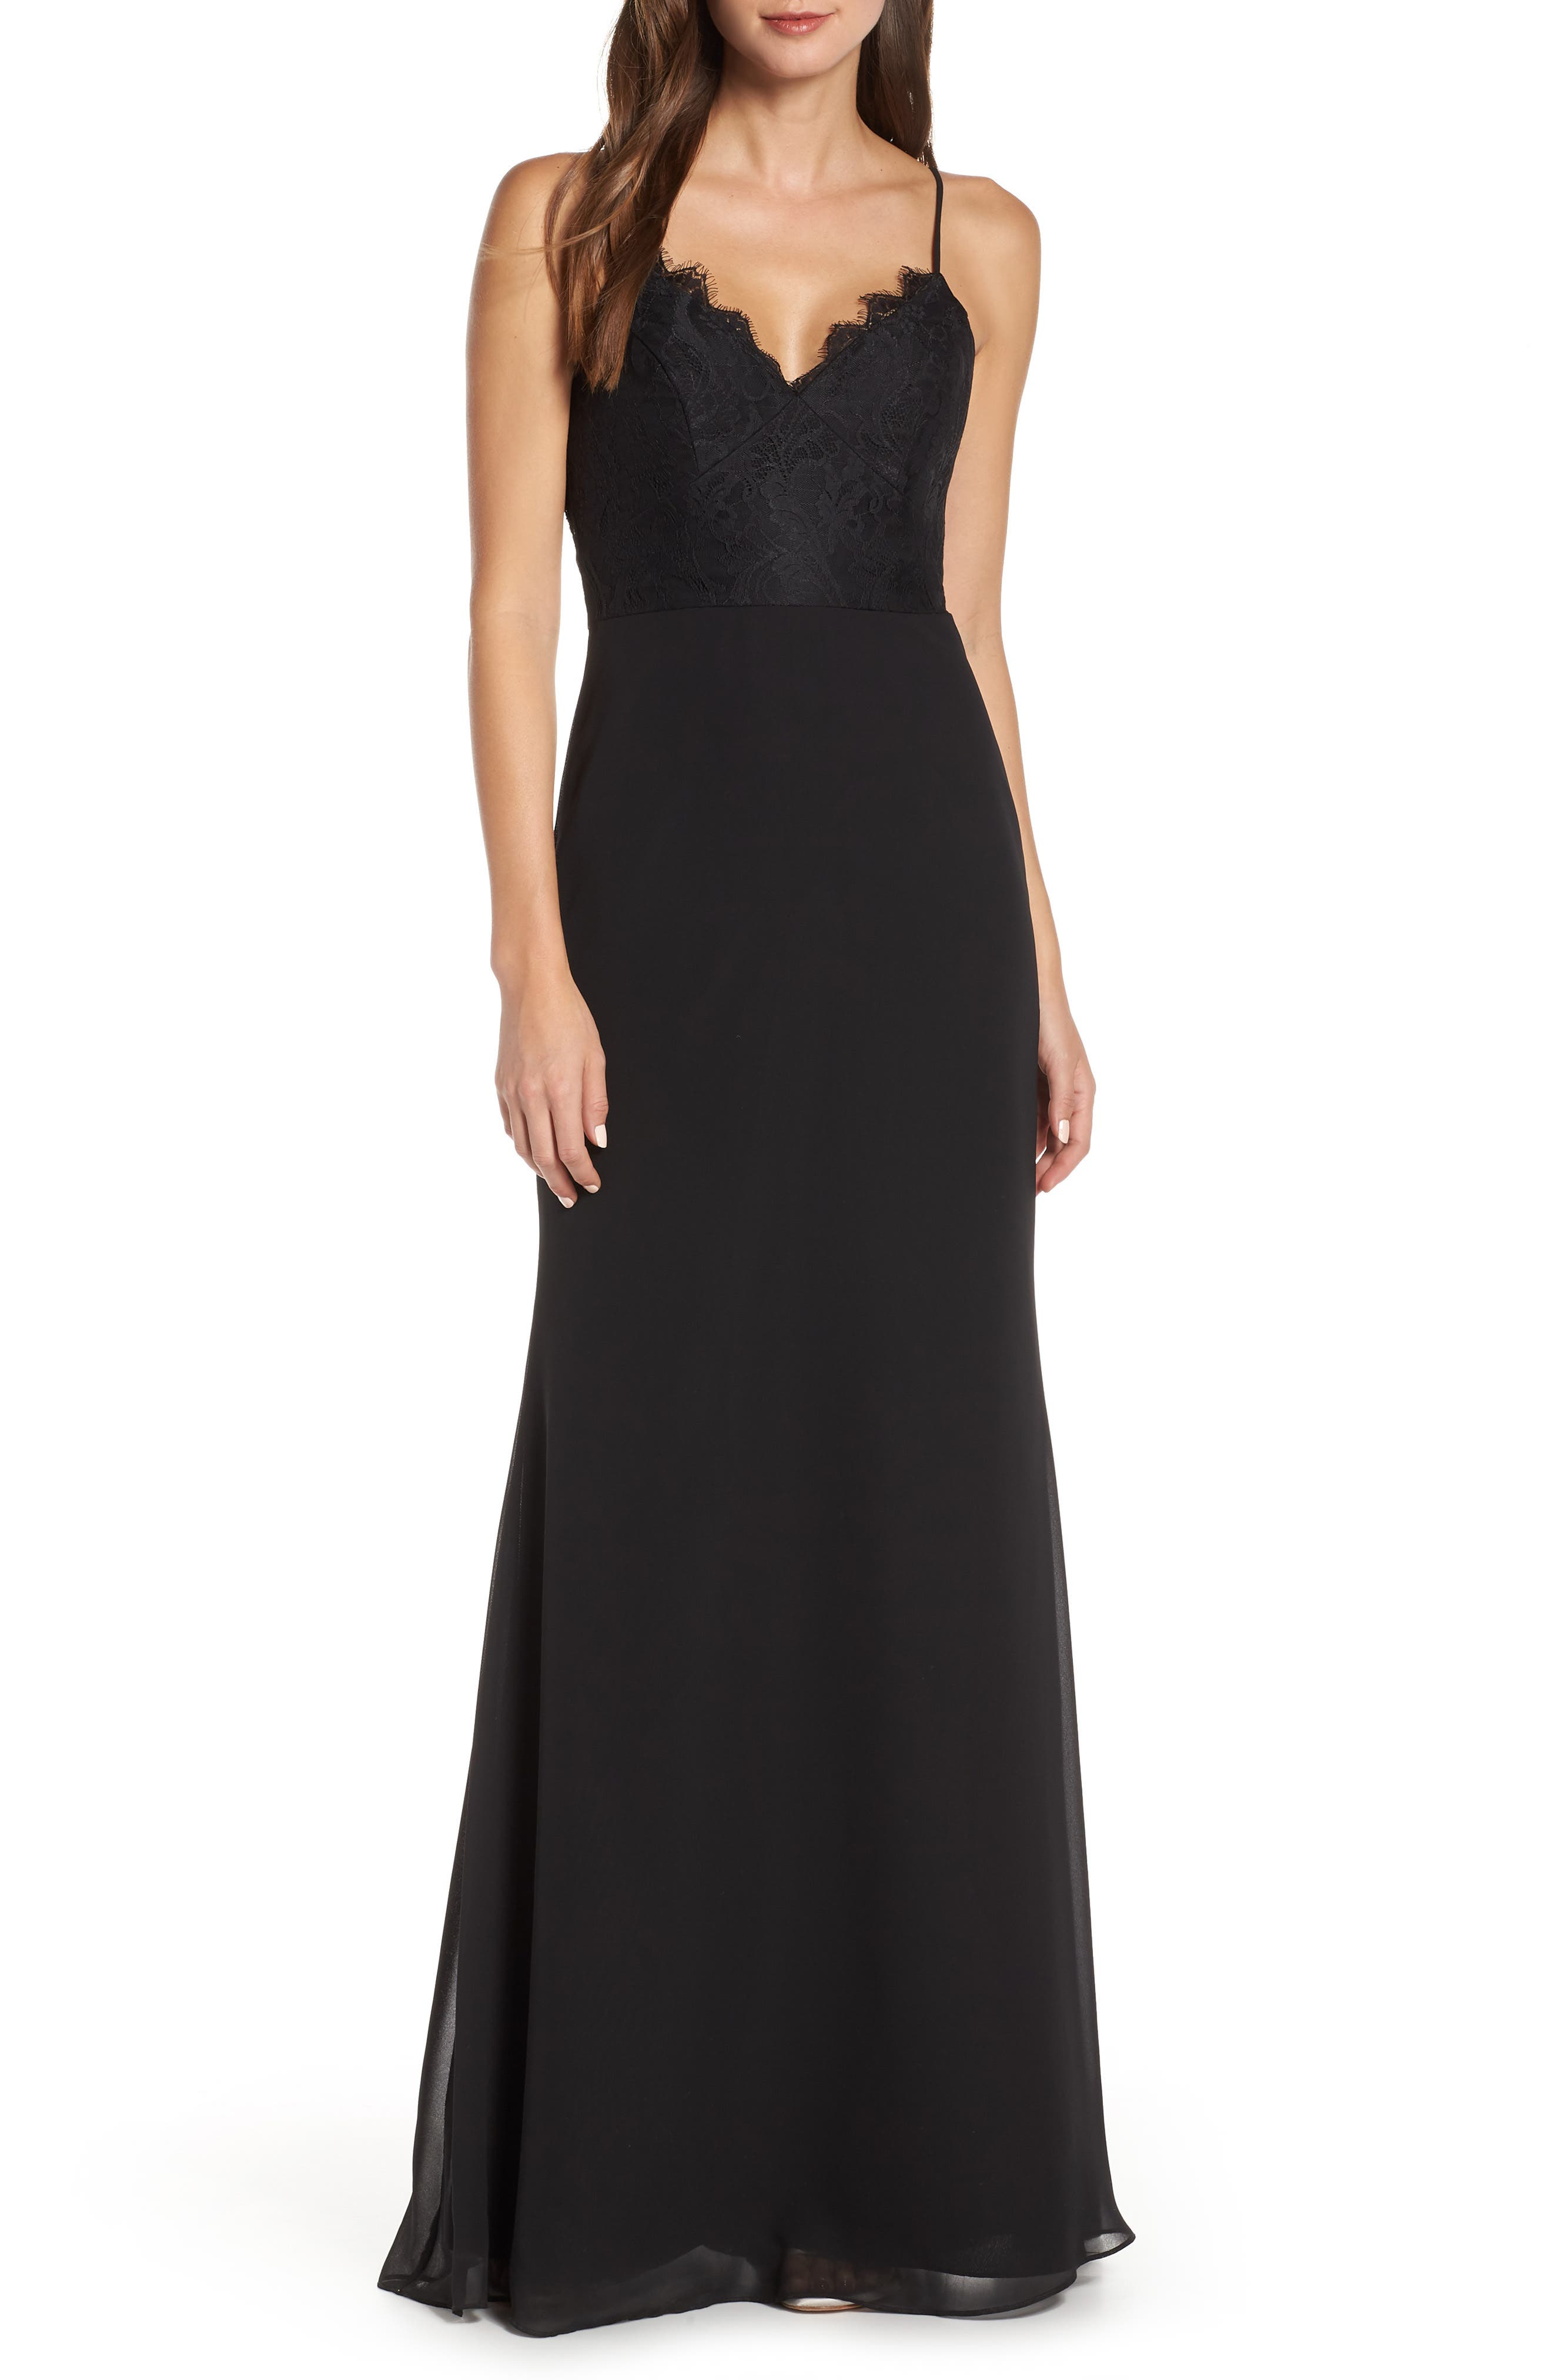 Hayley Paige Occasions Sleeveless Rose Lace & Chiffon Evening Dress, Black